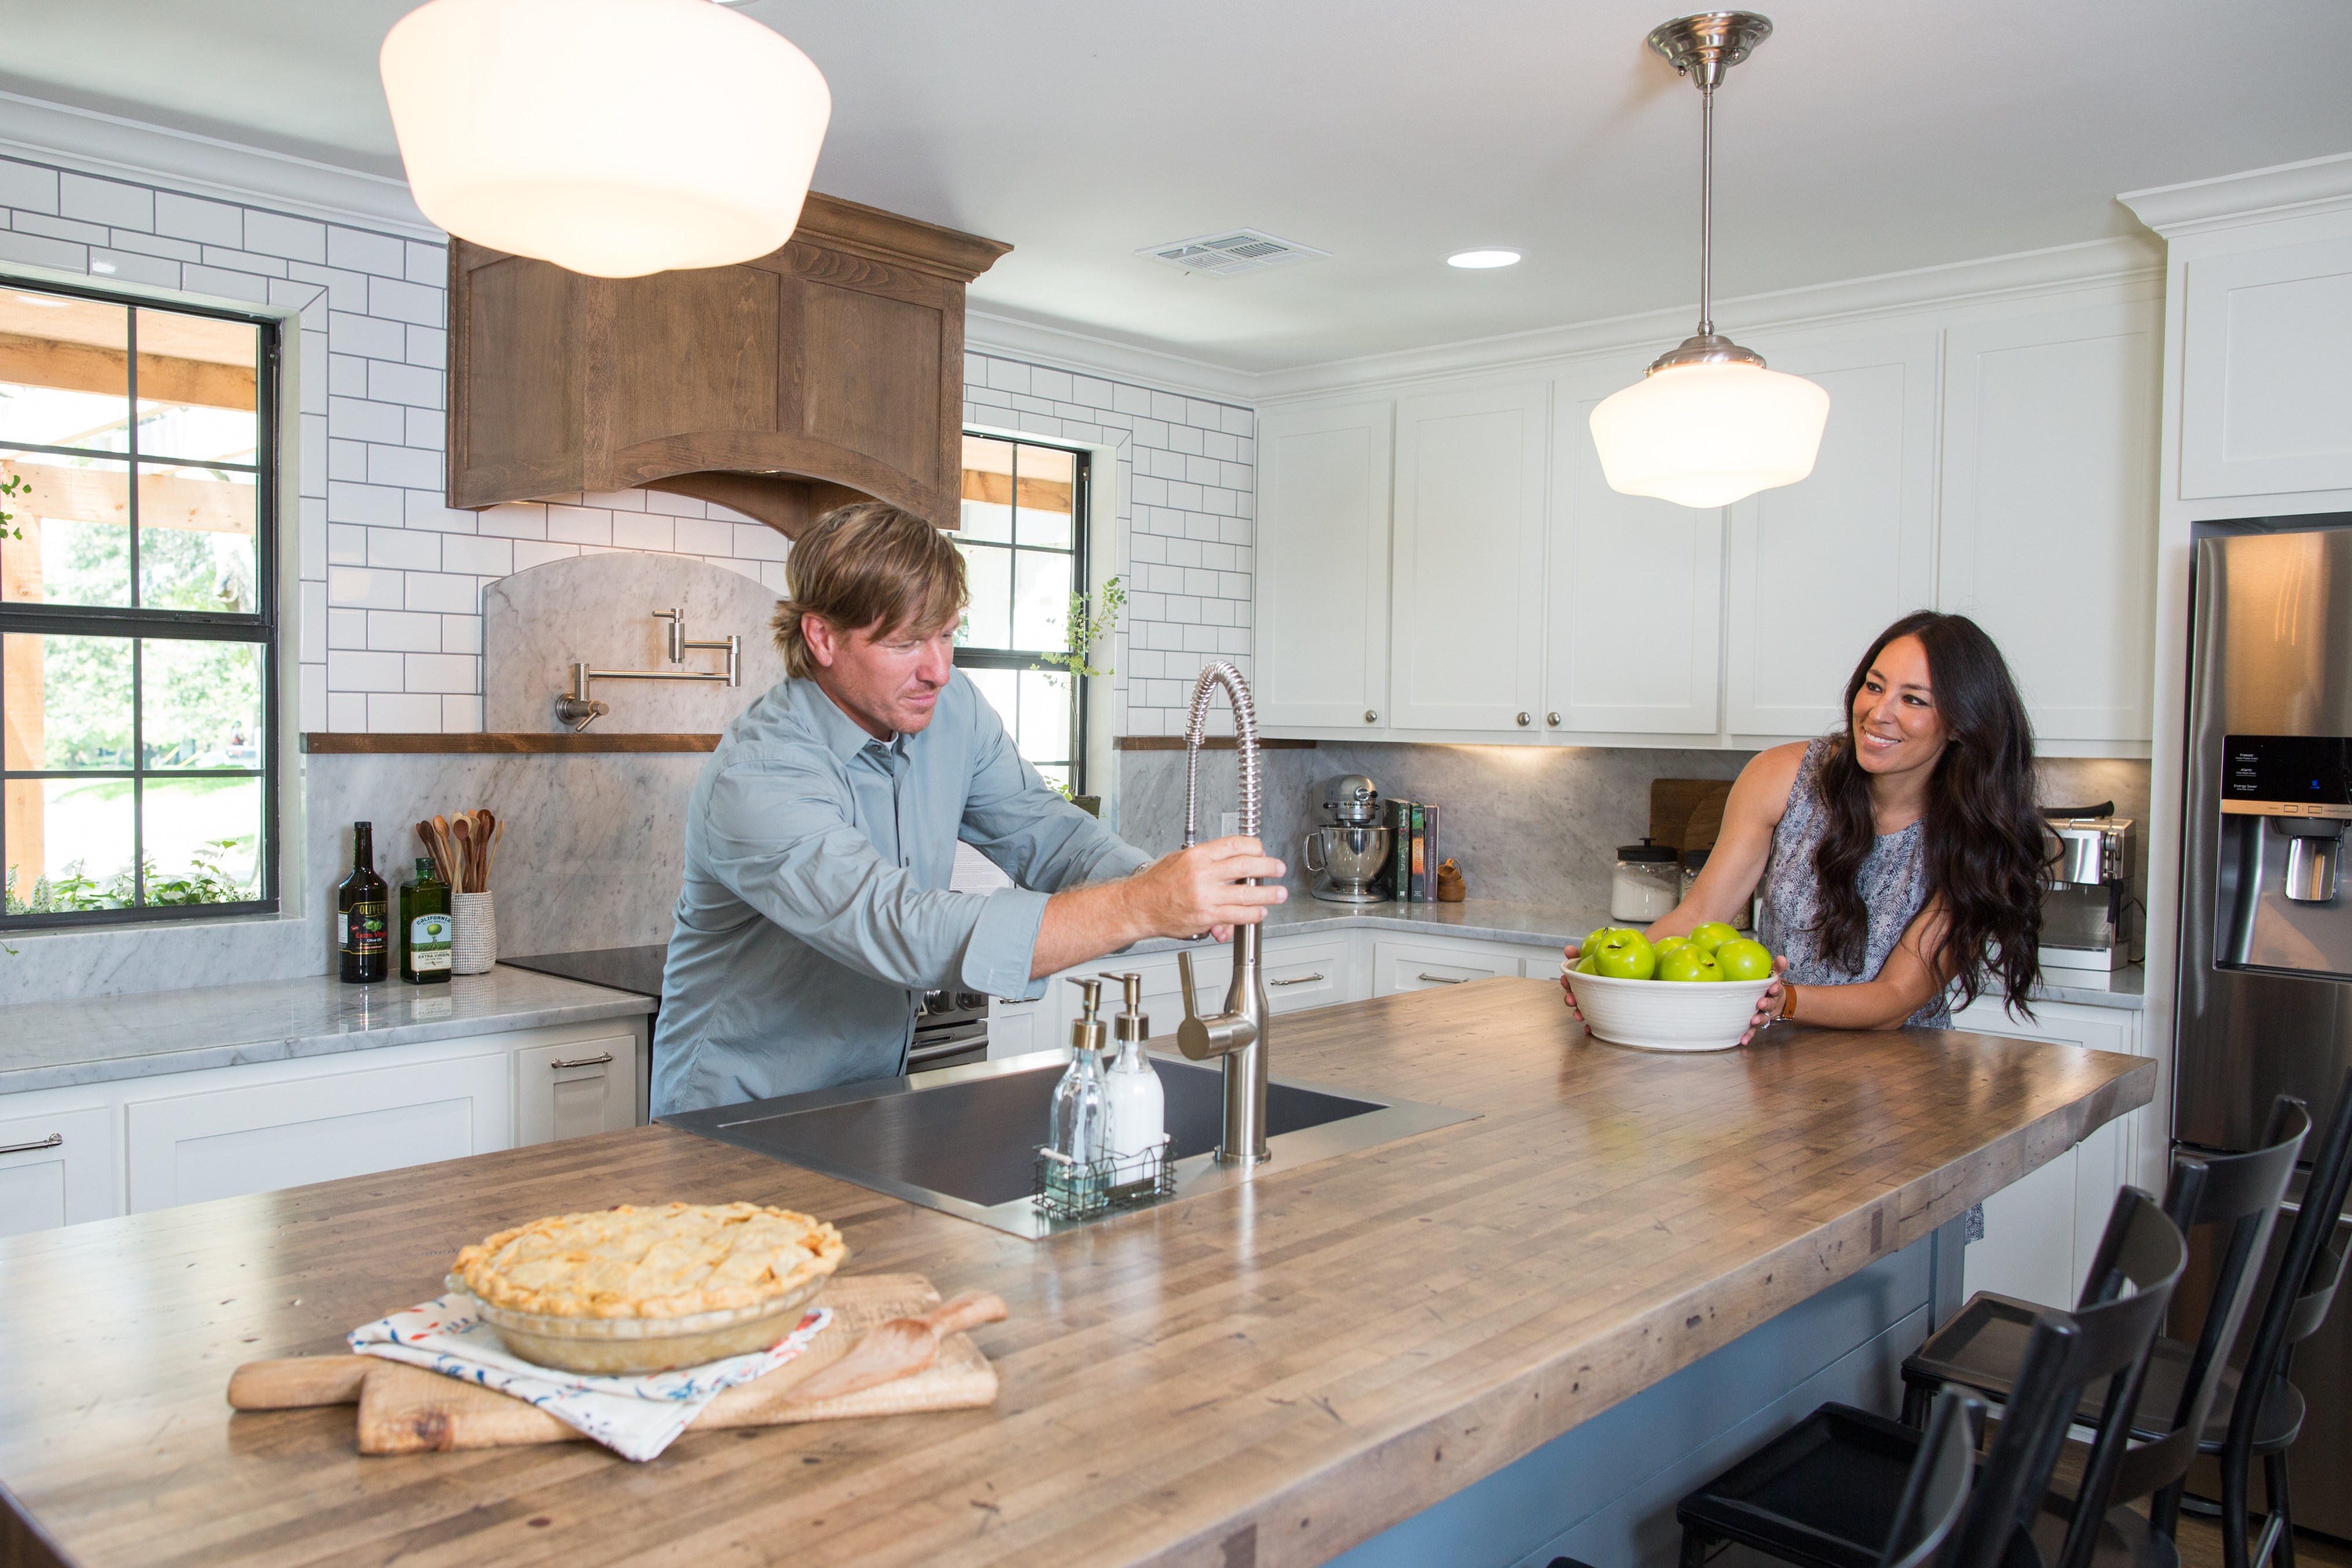 Fixer upper kitchens season 4 - Fixer Upper Chip And Joanna Gaines Return For A Fourth Season Canceled Tv Shows Tv Series Finale